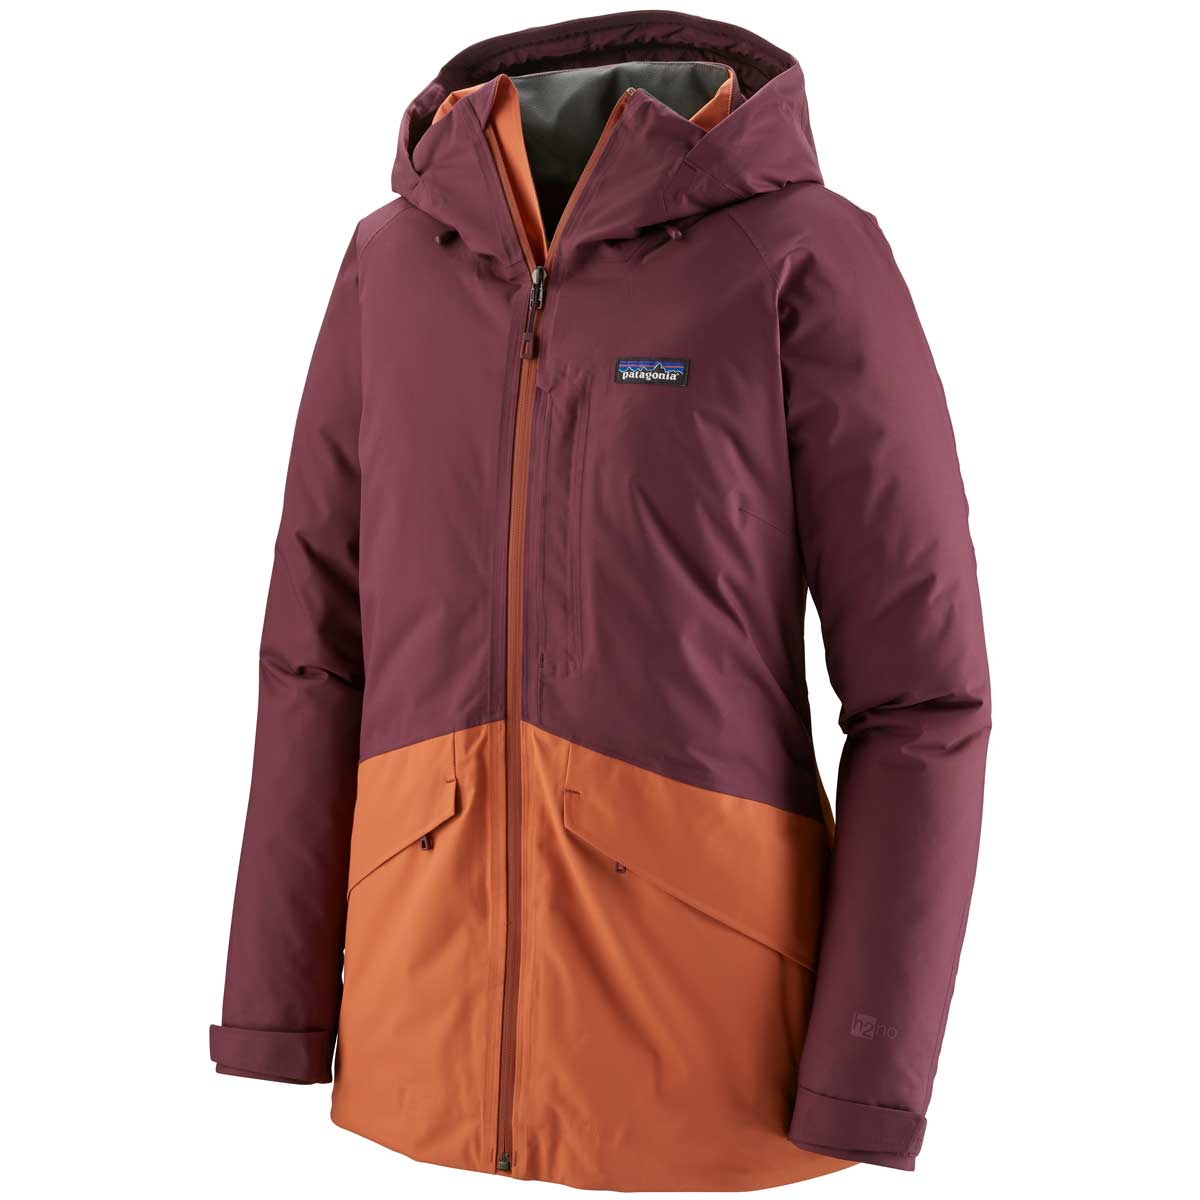 Patagonia women's Insulated Snowbelle Jacket in Light Balsamic front view